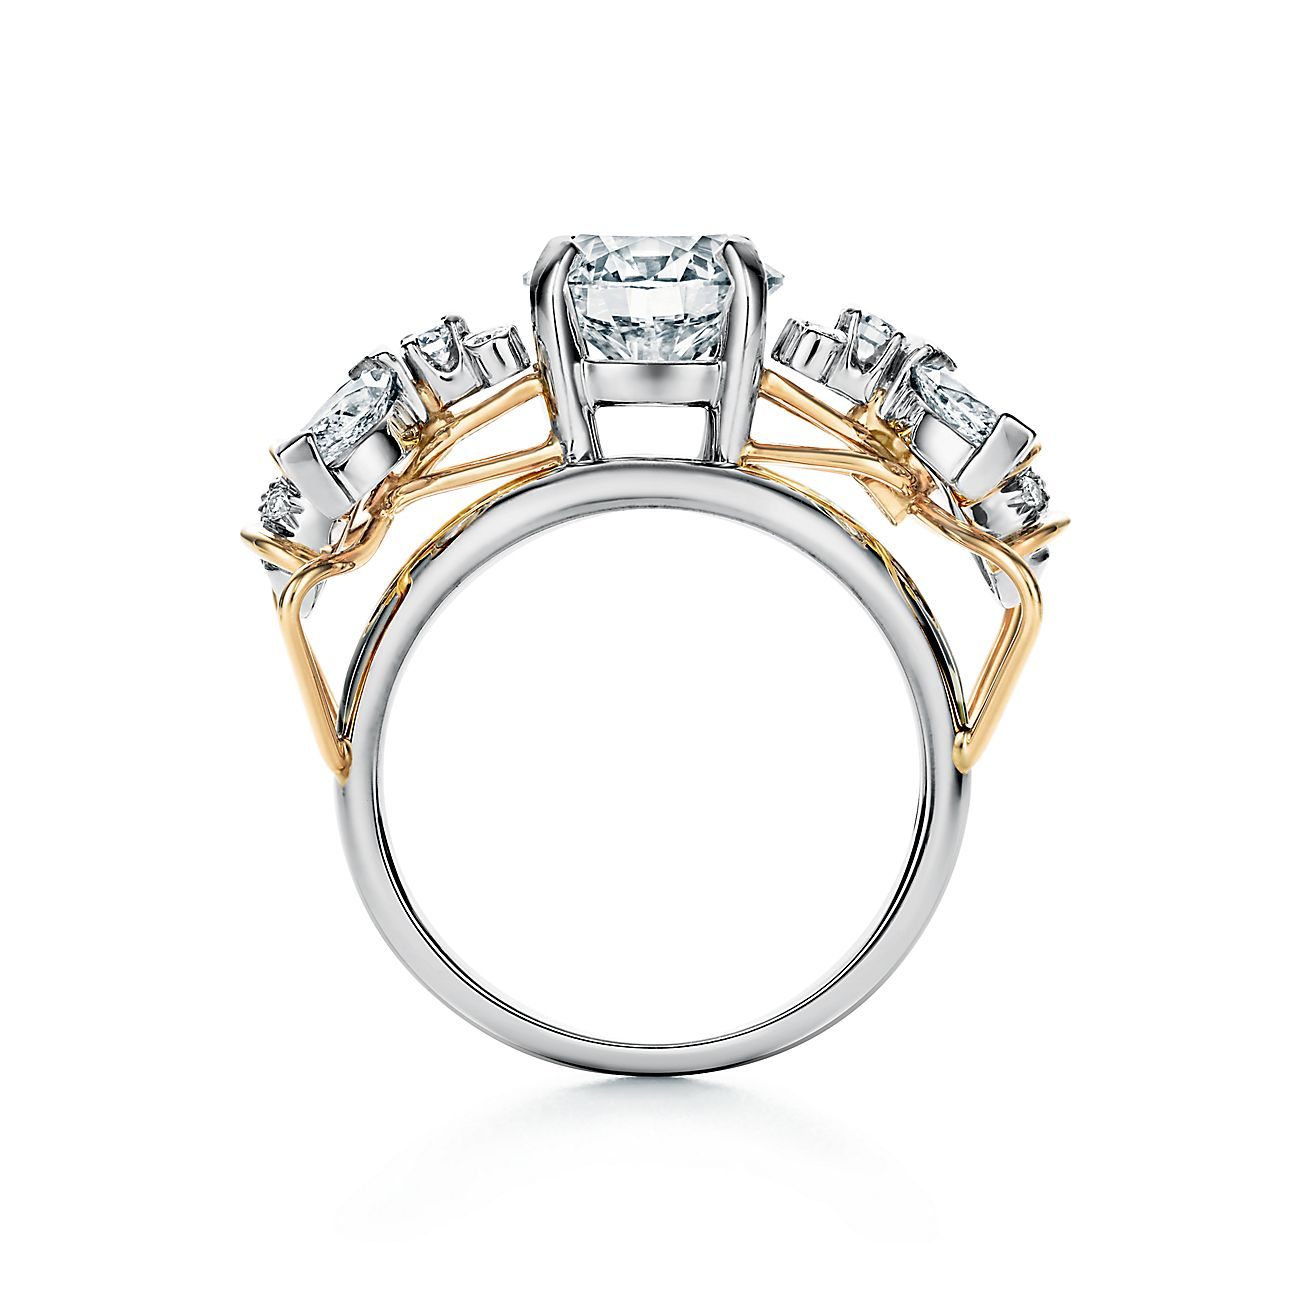 Tiffany Co Schlumberger Two Bees Engagement Ring In Platinum And 18k Gold